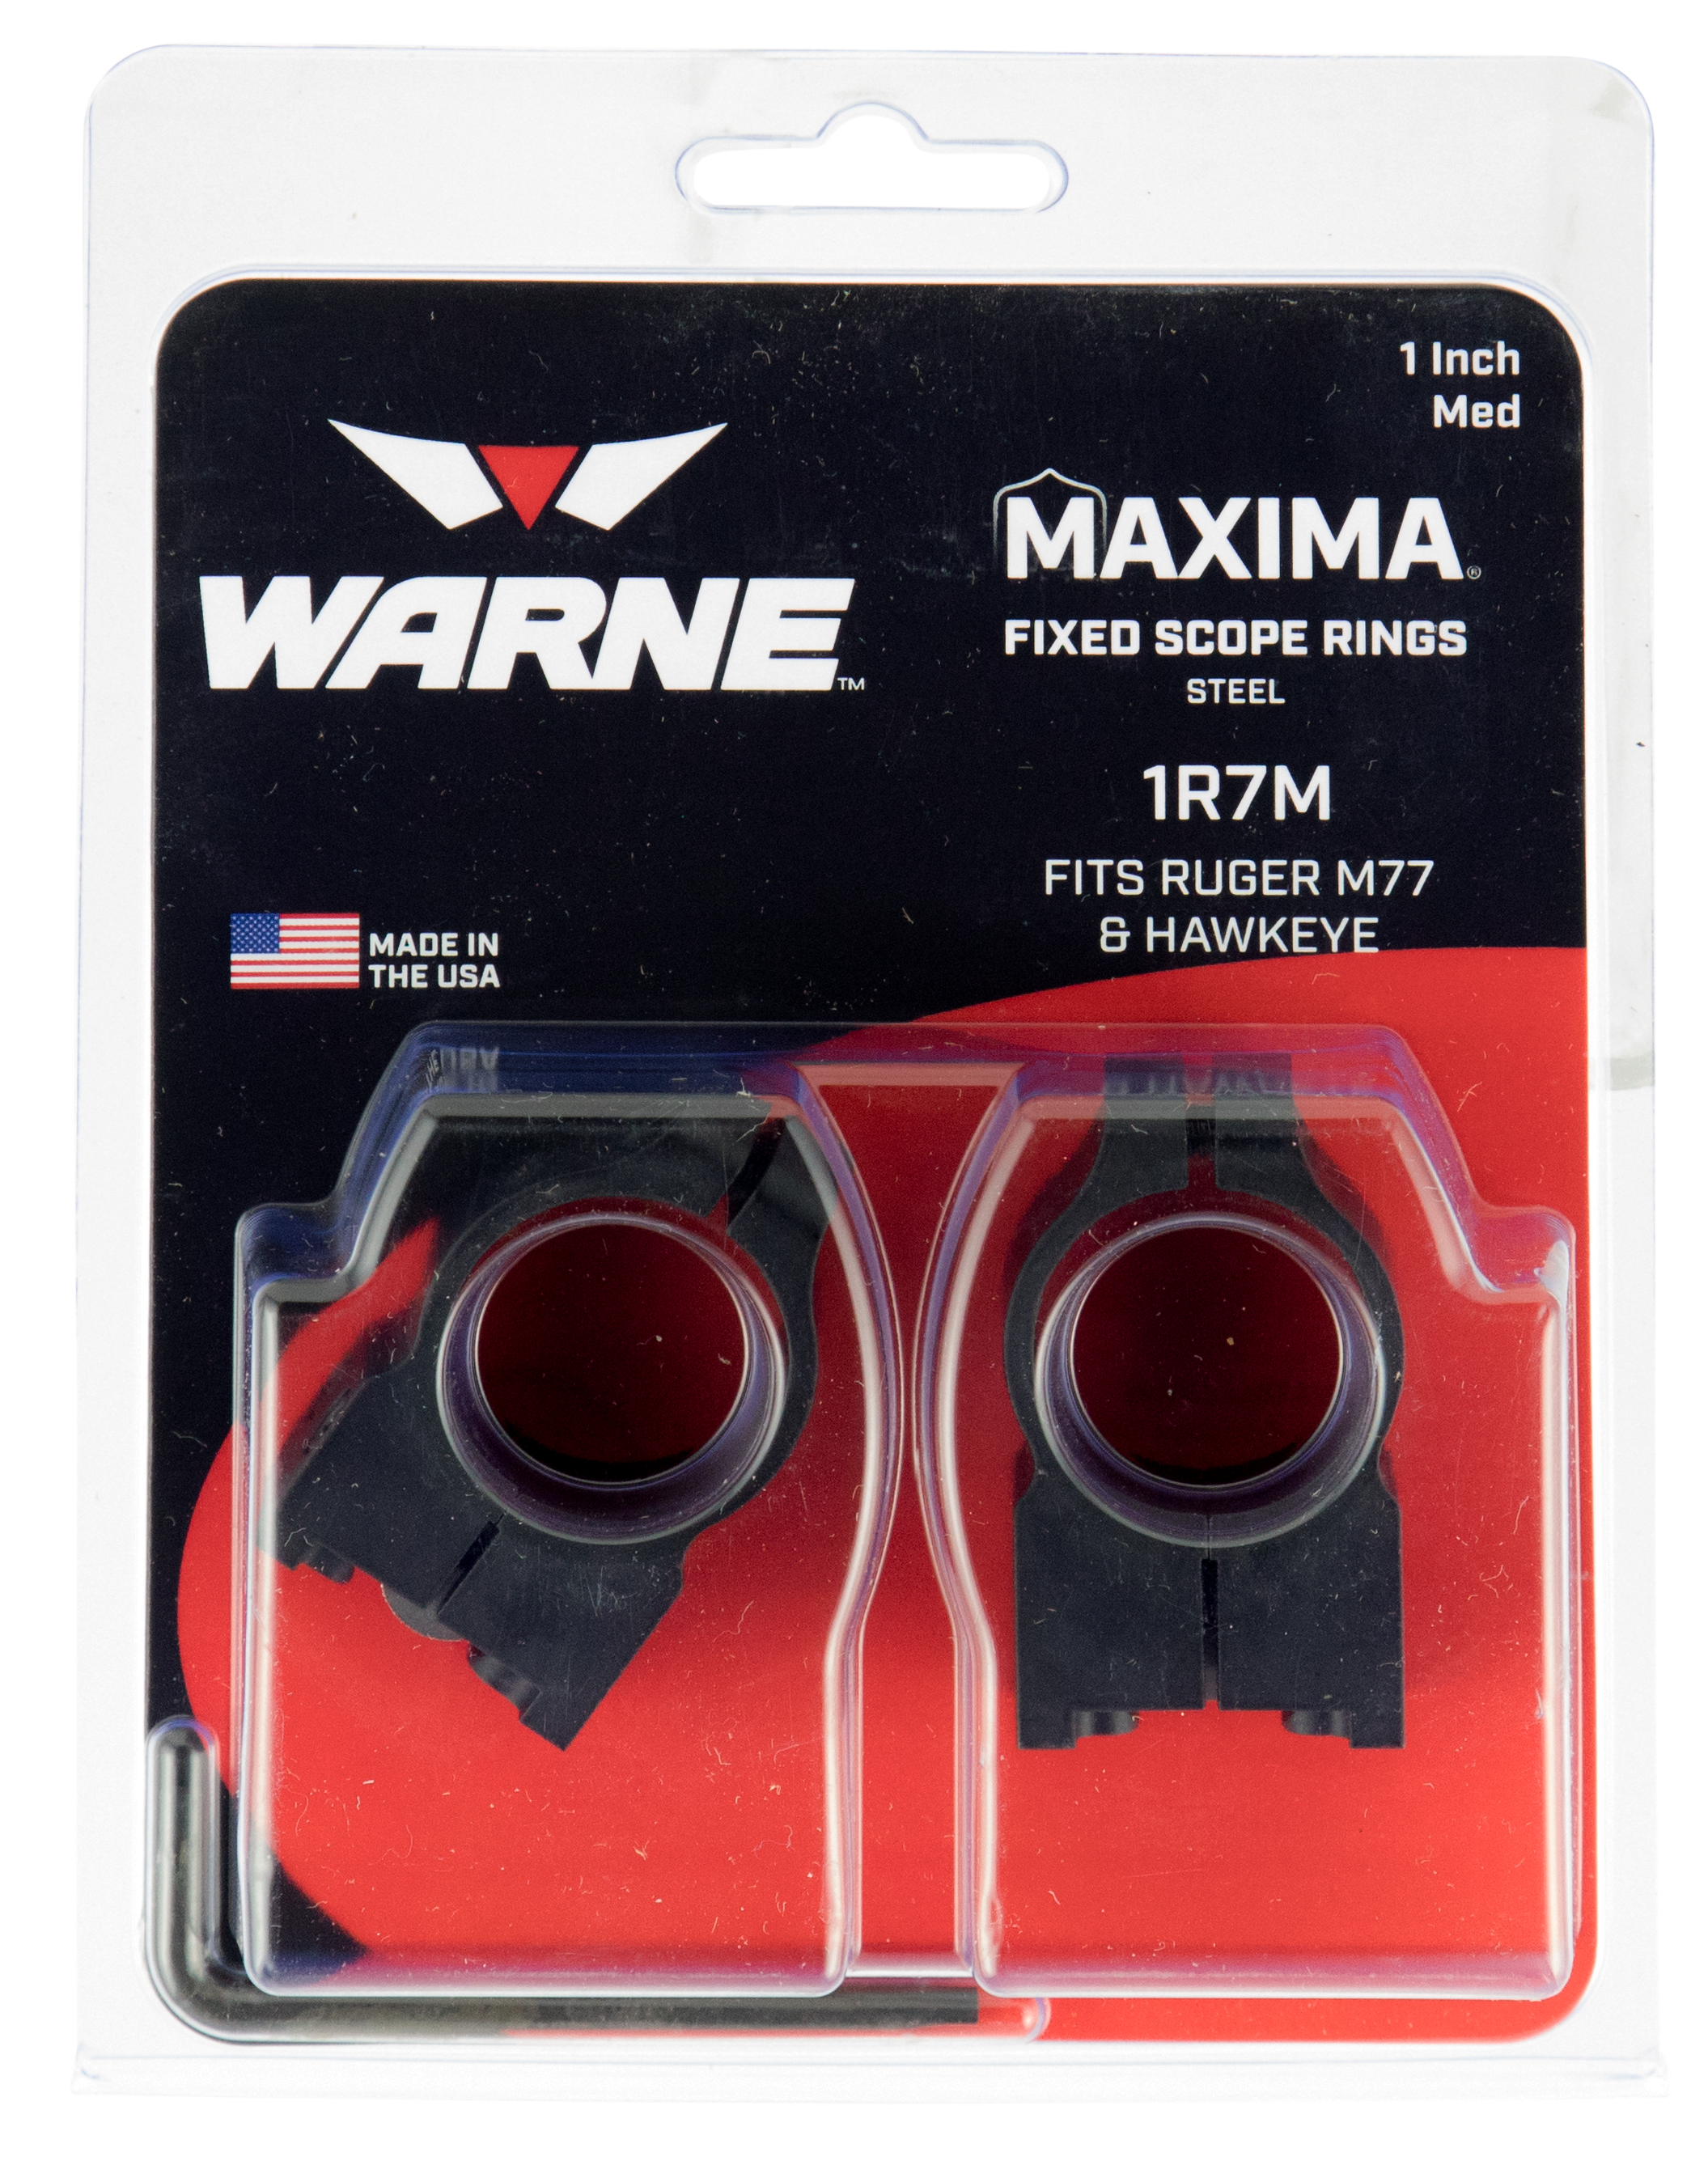 Warne 1R7M Ruger Ring Set 1